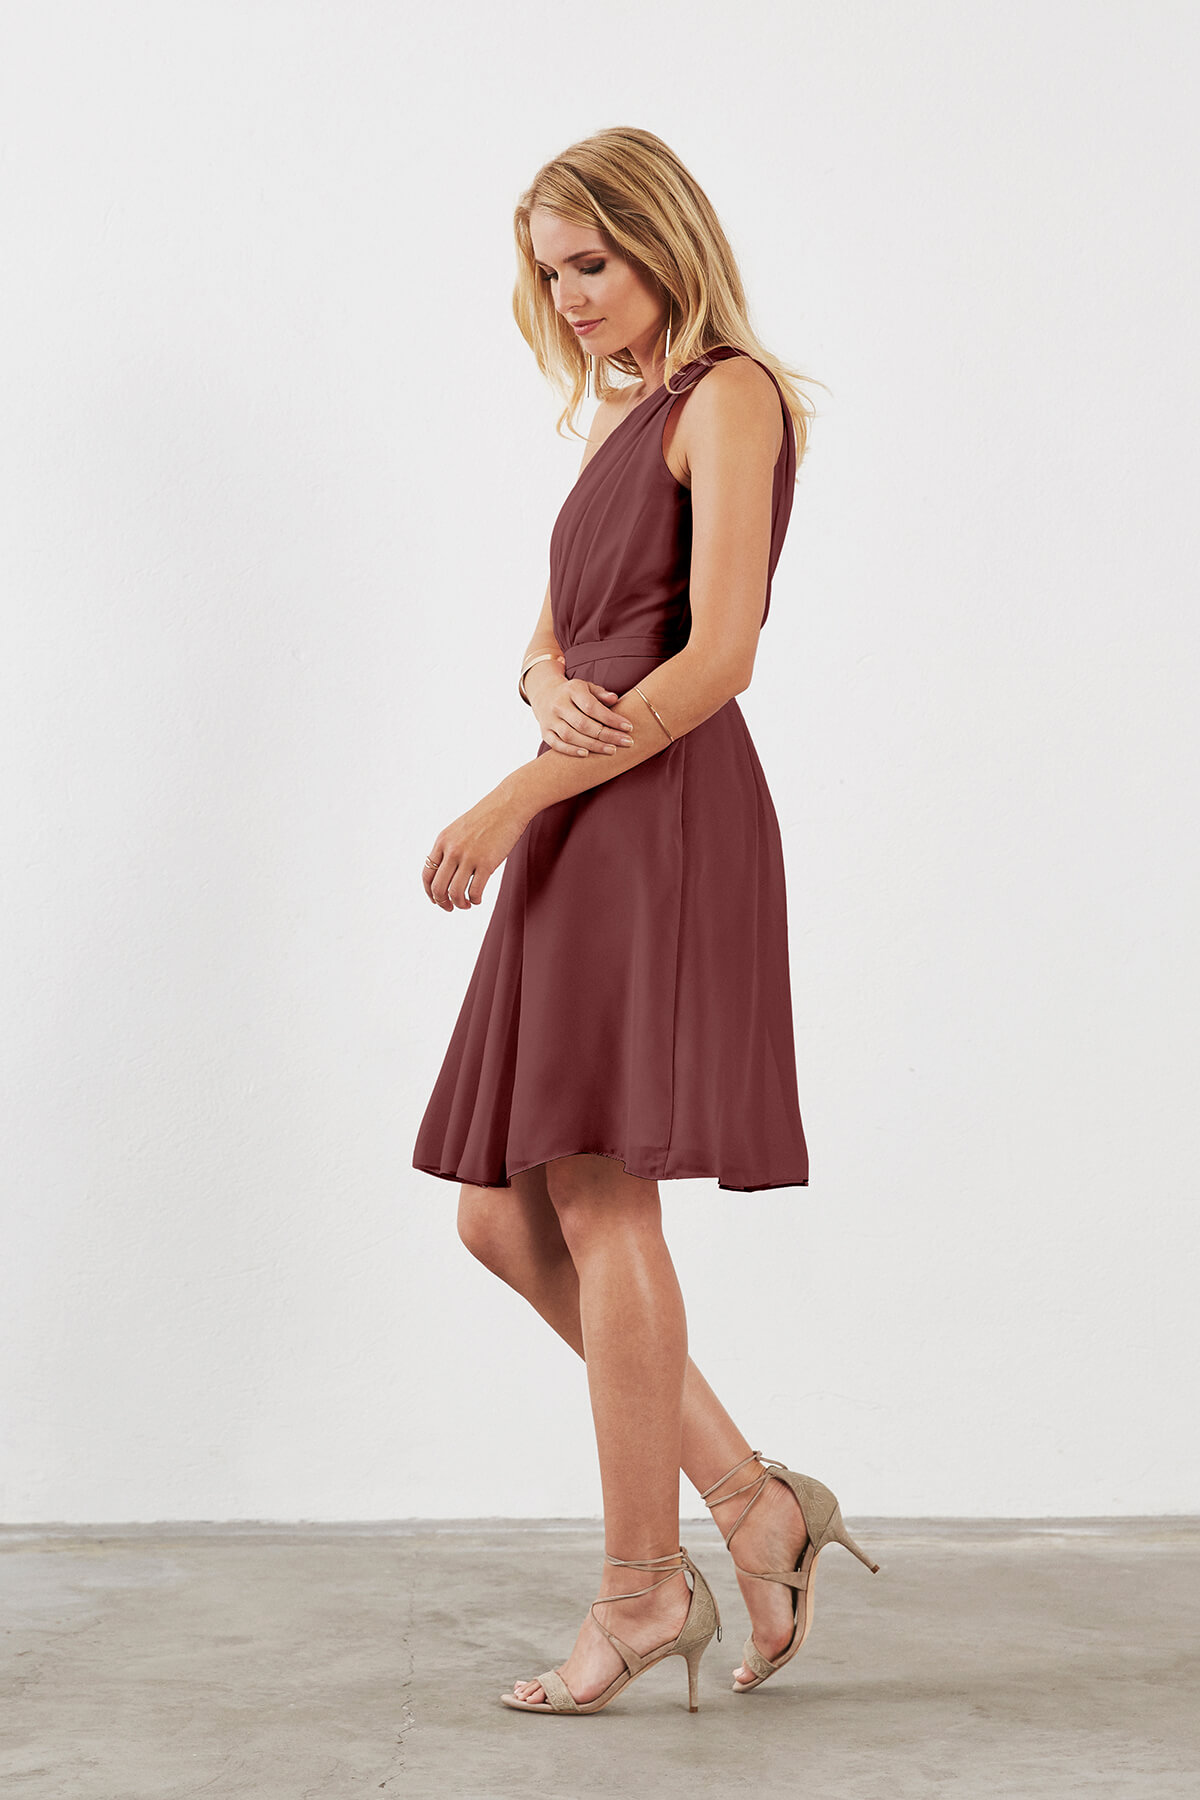 Single-Shoulder Strap Knee-Length Bridesmaid Dress | Bycouturier